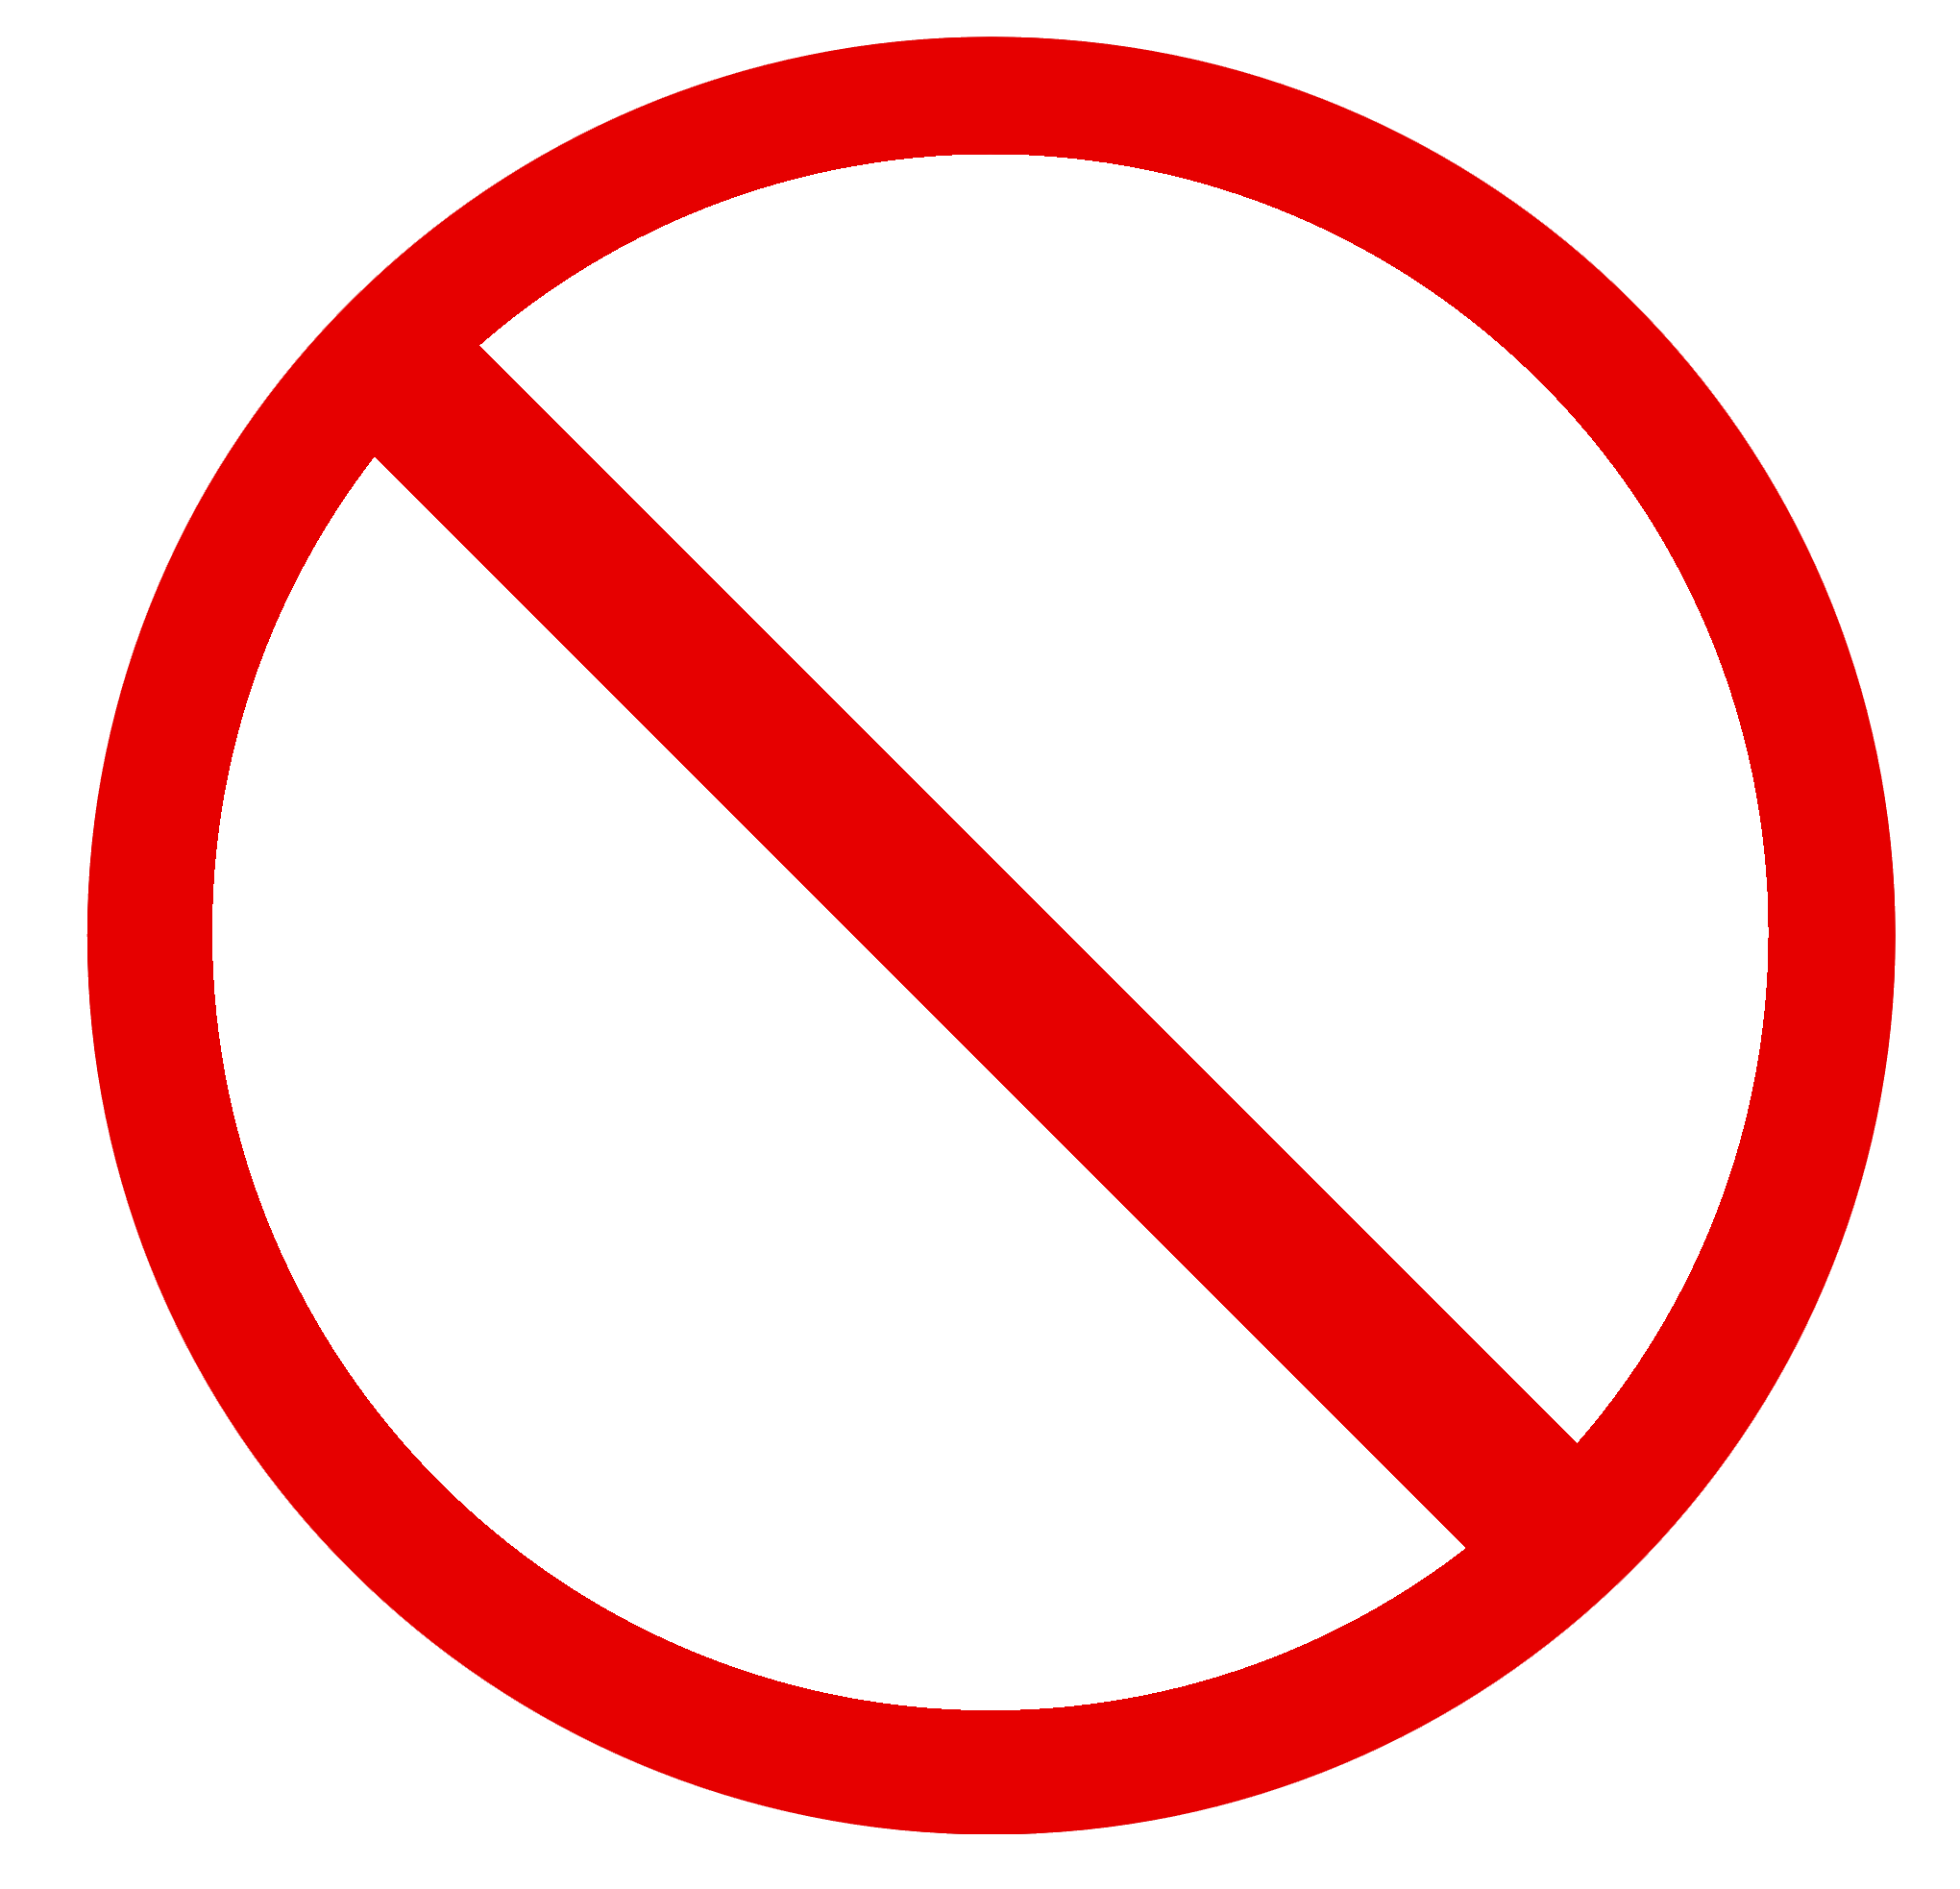 Restricted clipart picture Restricted No Entry PNG Clipart | PNG Mart picture